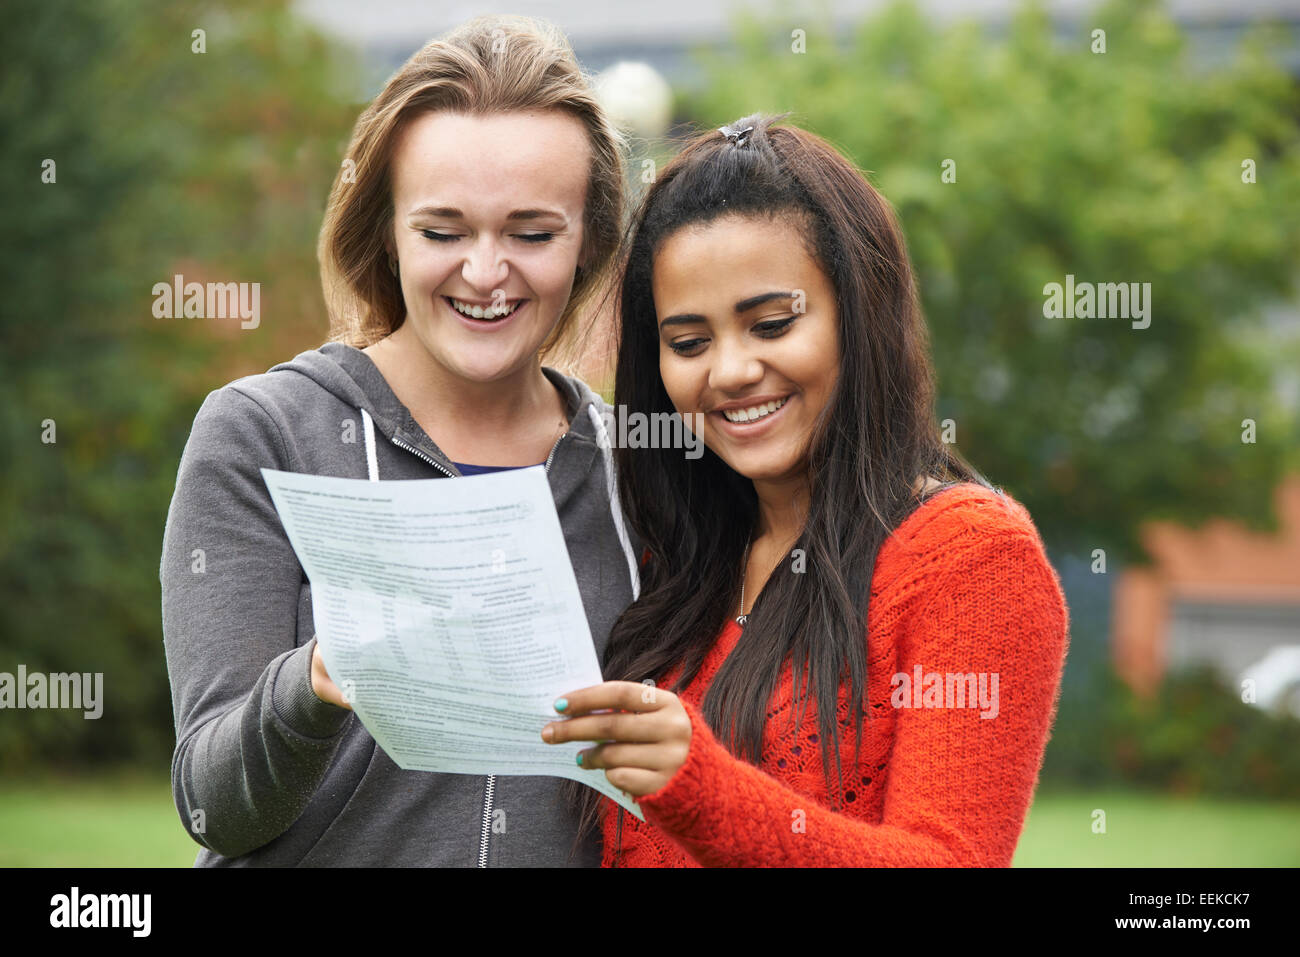 Two Female Students Celebrating Exam Results Together - Stock Image